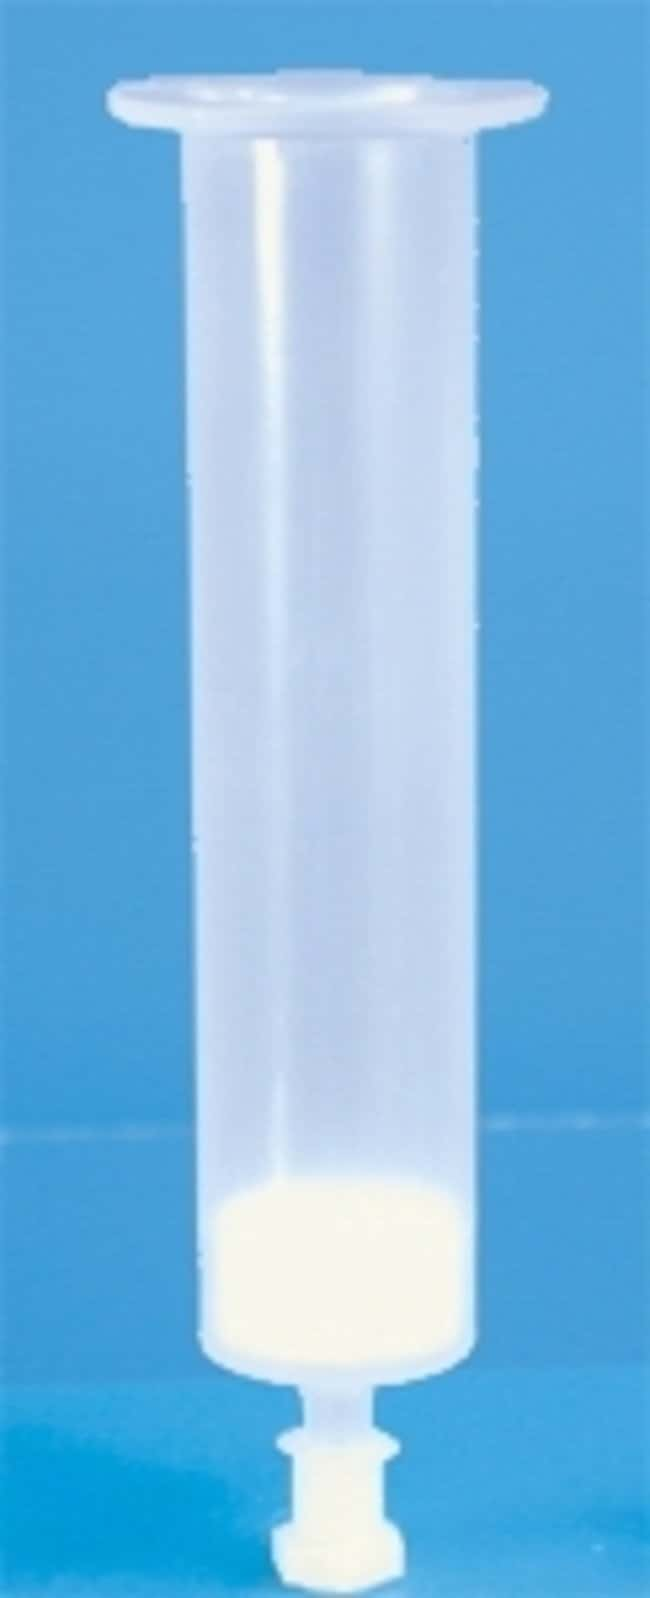 Macherey-Nagel™ Chromabond™ SiOH Polypropylene SPE Column Column Capacity: 15mL; Adsorbent Weight: 2g Macherey-Nagel™ Chromabond™ SiOH Polypropylene SPE Column